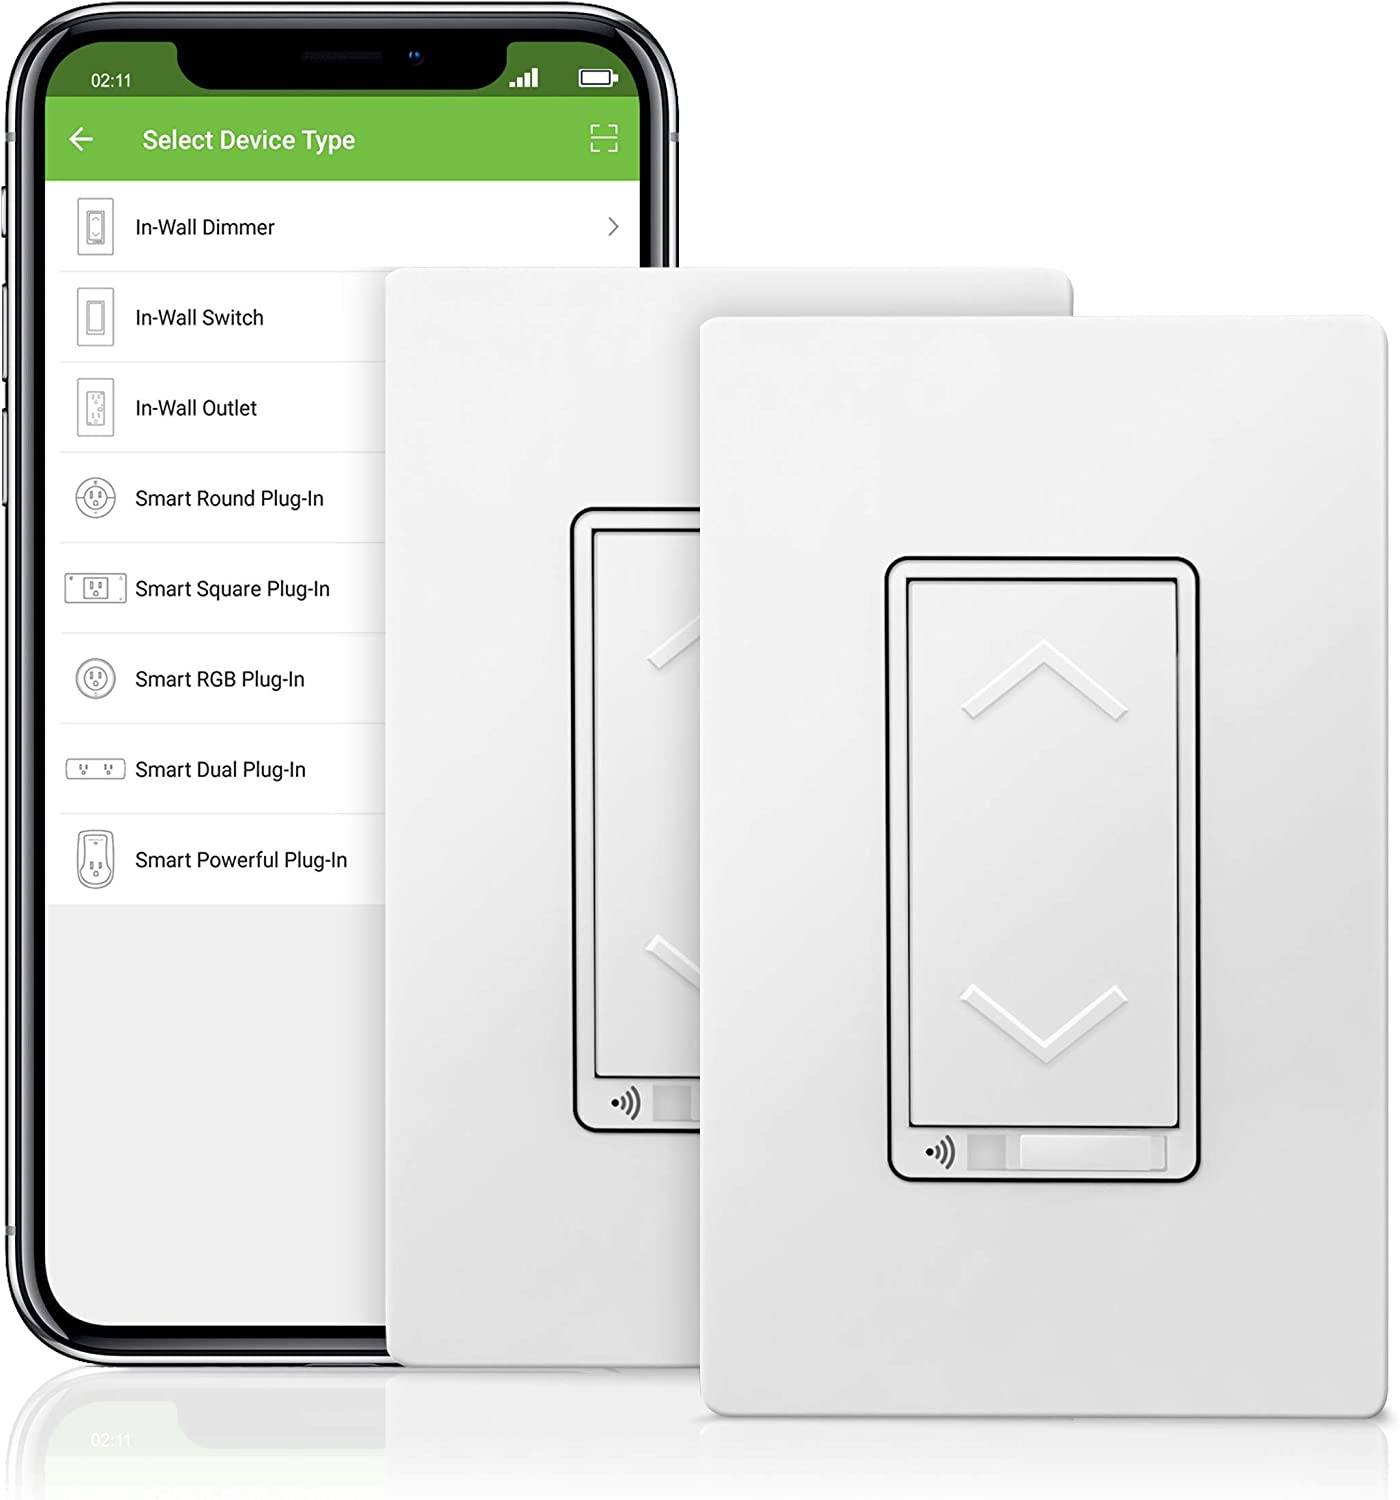 TOPGREENER Smart Wi-Fi Dimmer Switch TGWF3K Sold Separately Compatible with Alexa and Google Assistant Dim Lighting from Anywhere TGWF500D 2 Pack Top Greener Inc No Hub Required Single Pole or 3-Way in-Wall